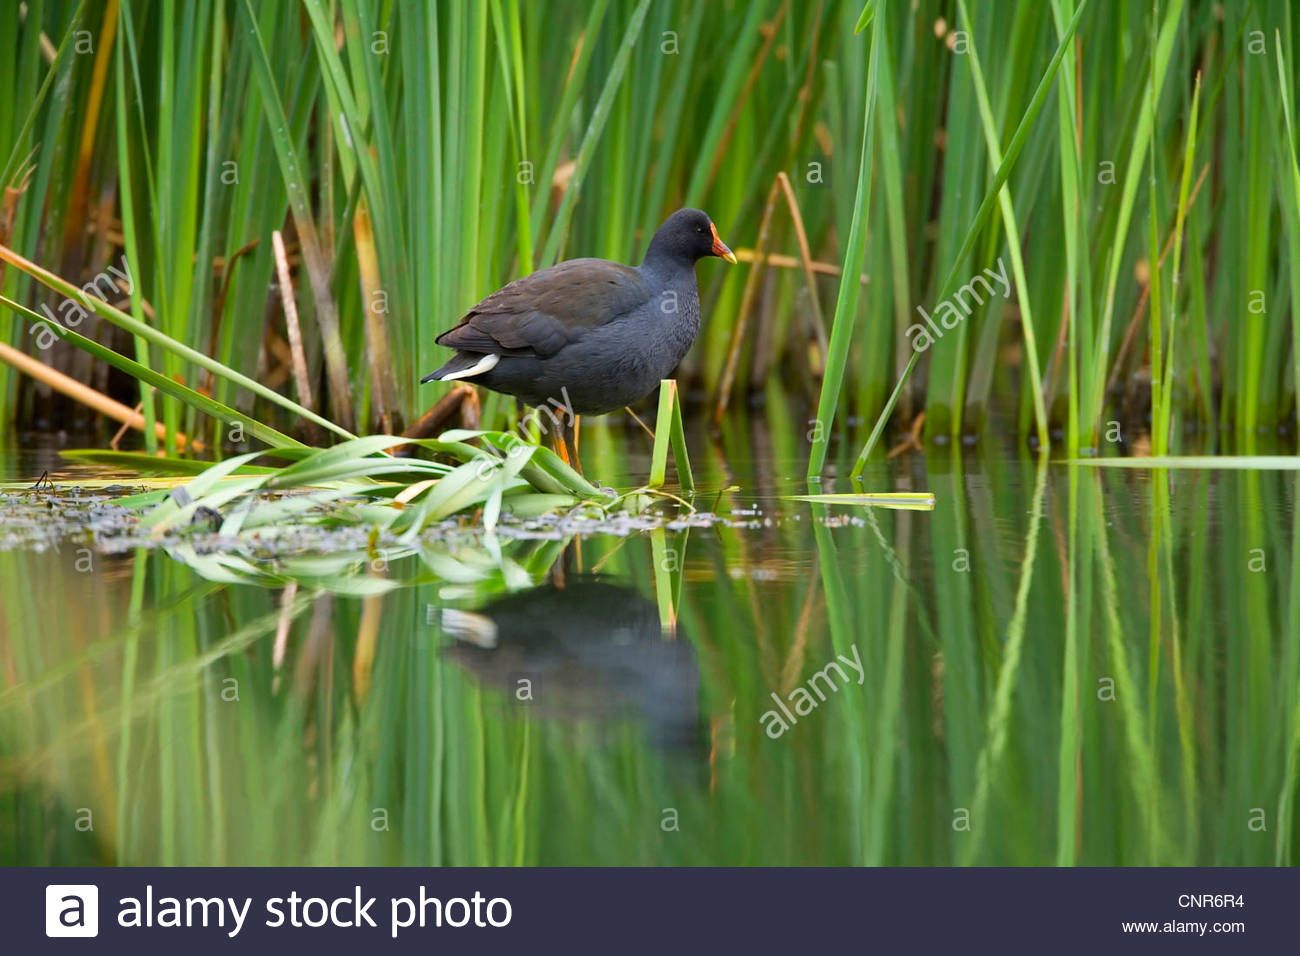 dusky moorhen (Gallinula tenebrosa), adult sits on shore vegetation looking out. The body of the moorhen reflects - Stock Image